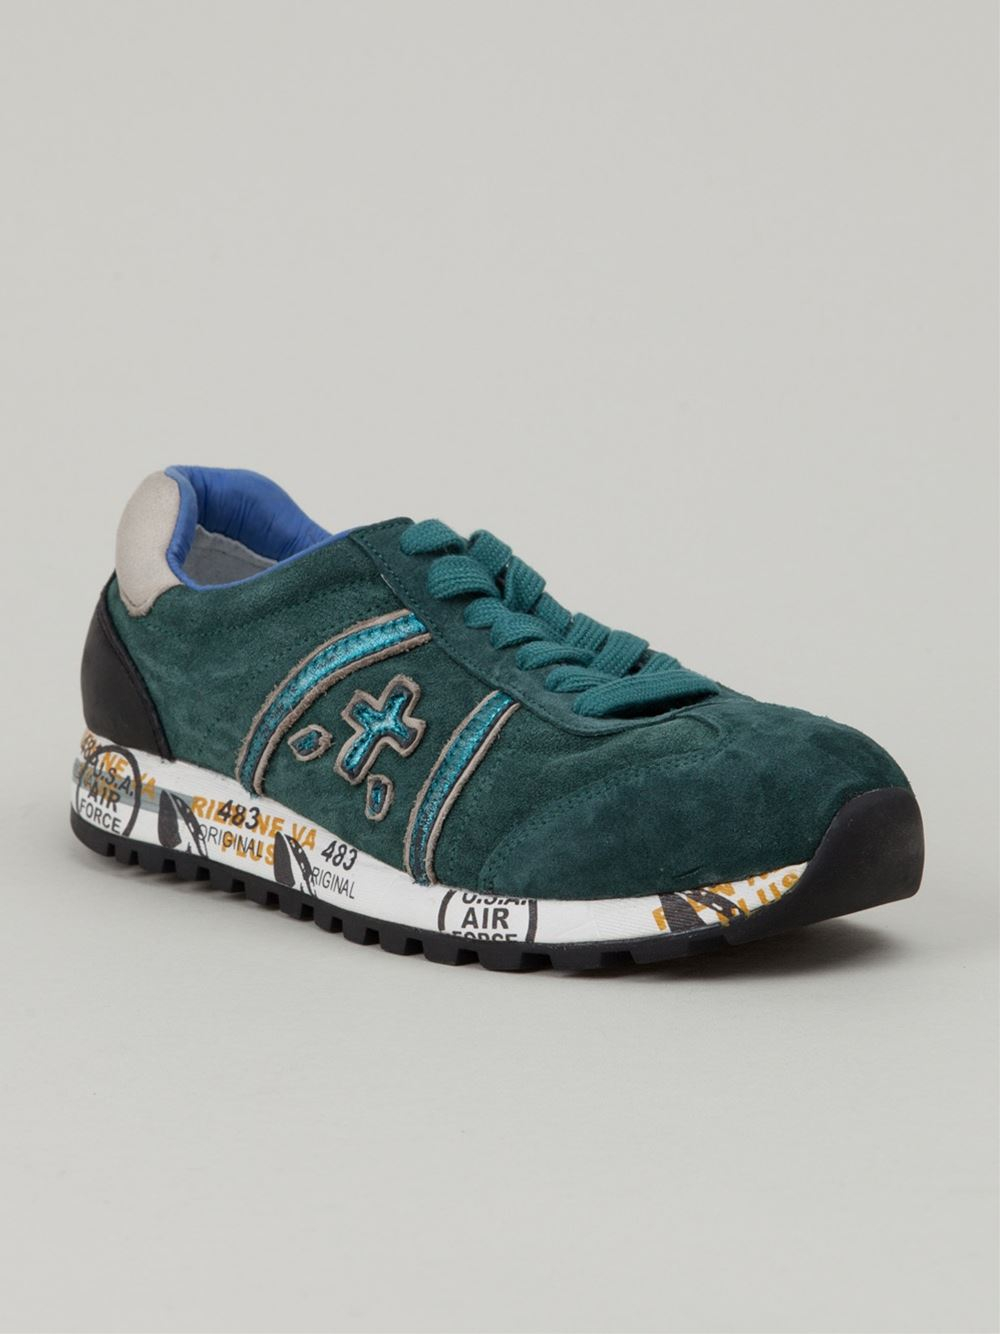 Lucy sneakers - Green Premiata Cheap Sale For Cheap Outlet Authentic Recommend For Sale Authentic Cheap Price Cheap Sale Low Shipping Fee 9iLlJr